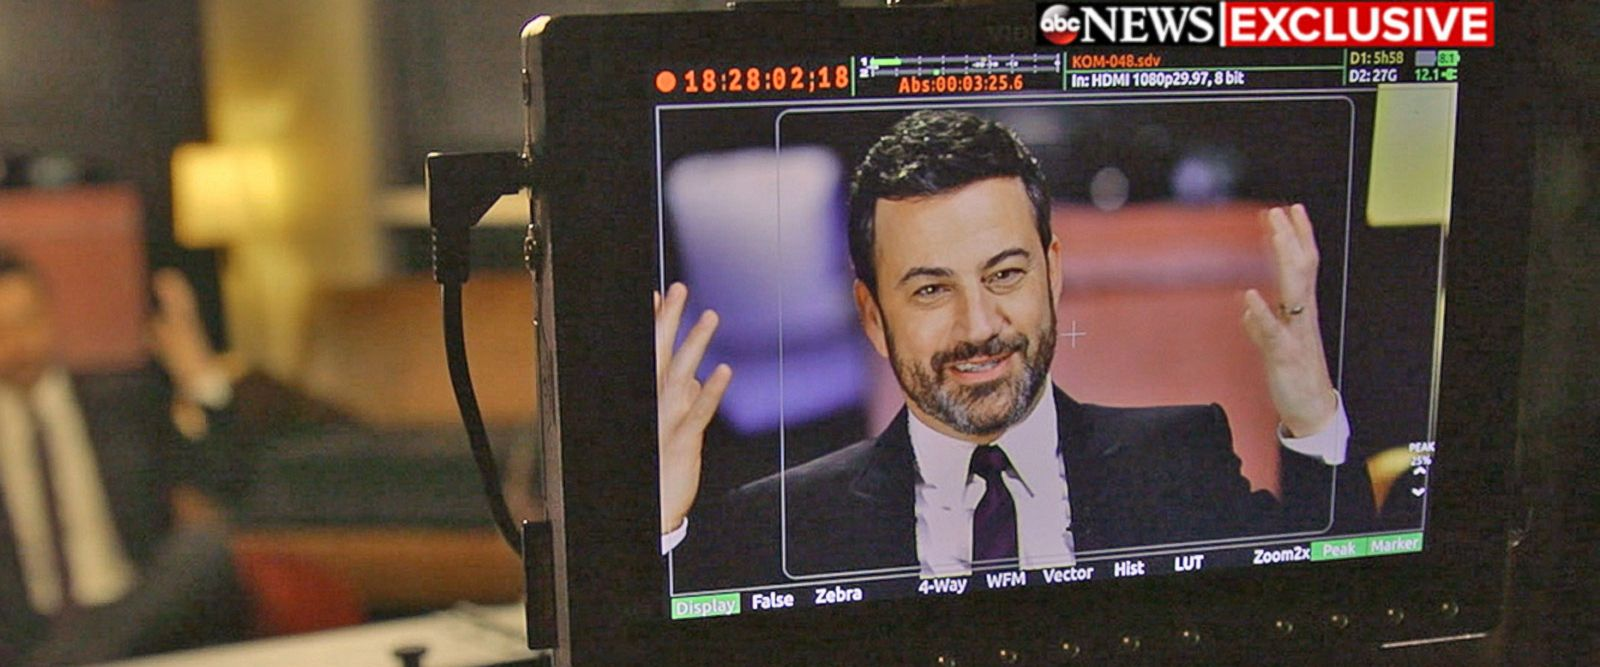 VIDEO: Extended 'GMA' interview: How Jimmy Kimmel is preparing to host the Oscars